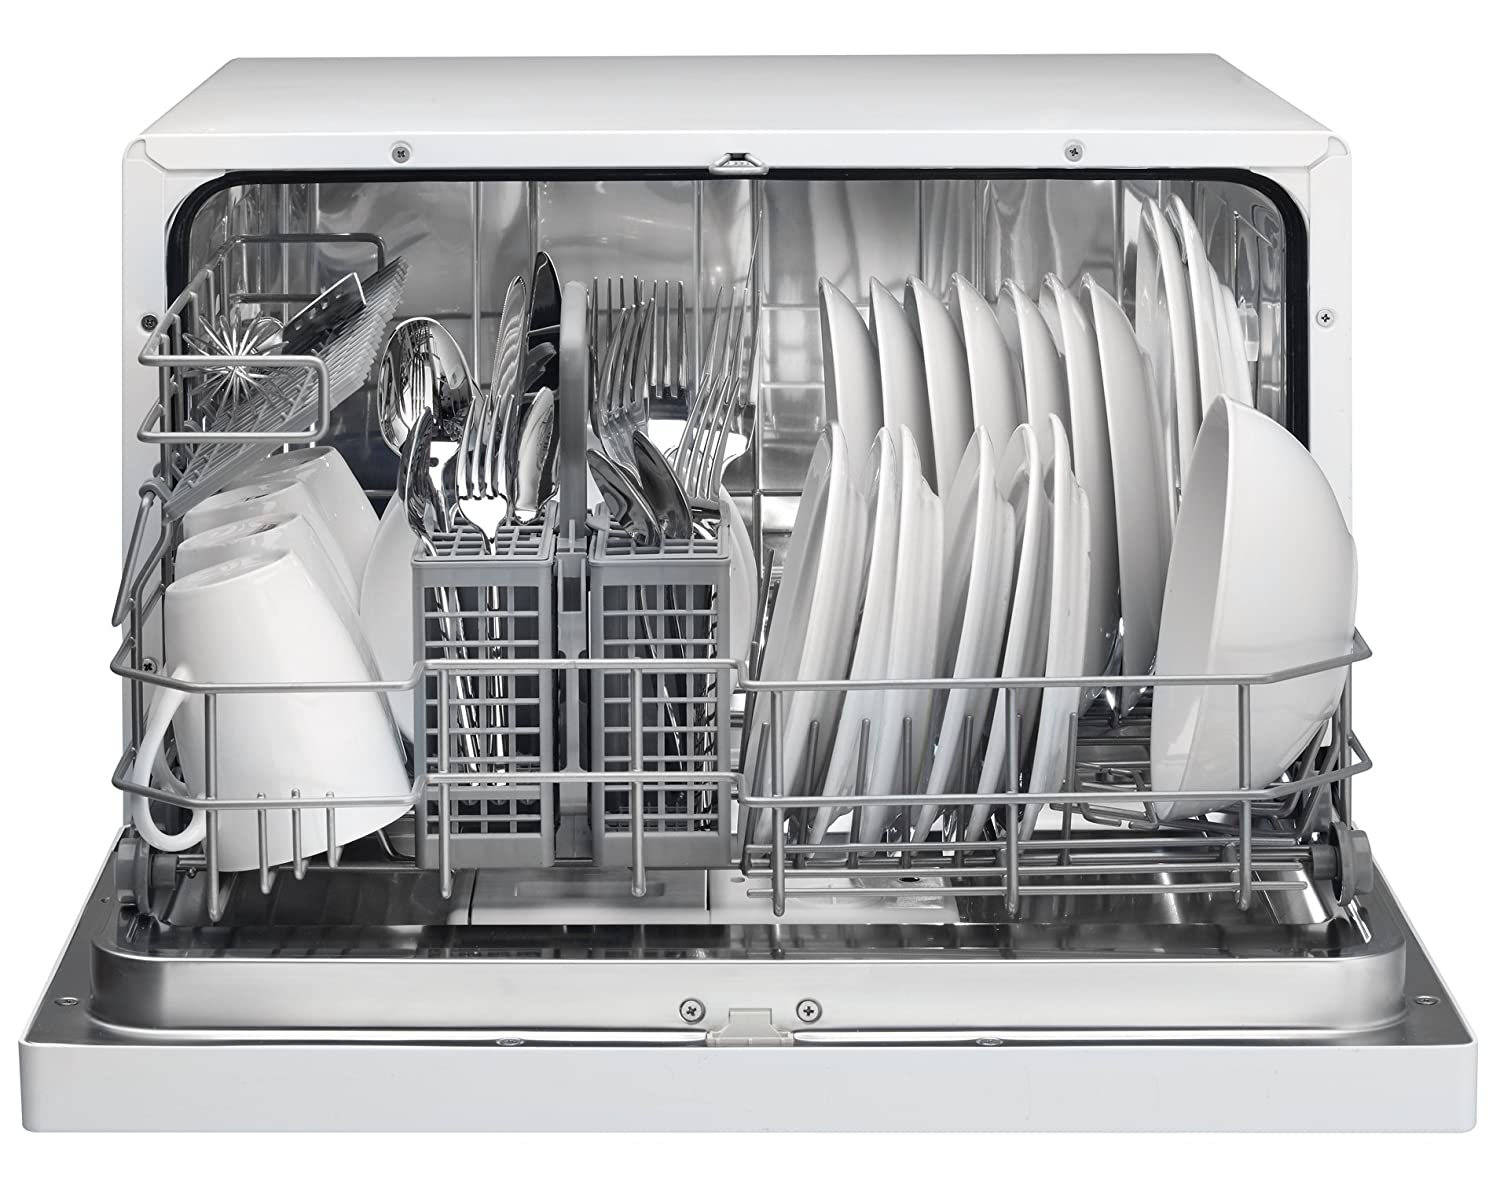 Mini Dishwashers Amazoncom Danby Ddw611wled Countertop Dishwasher White Appliances